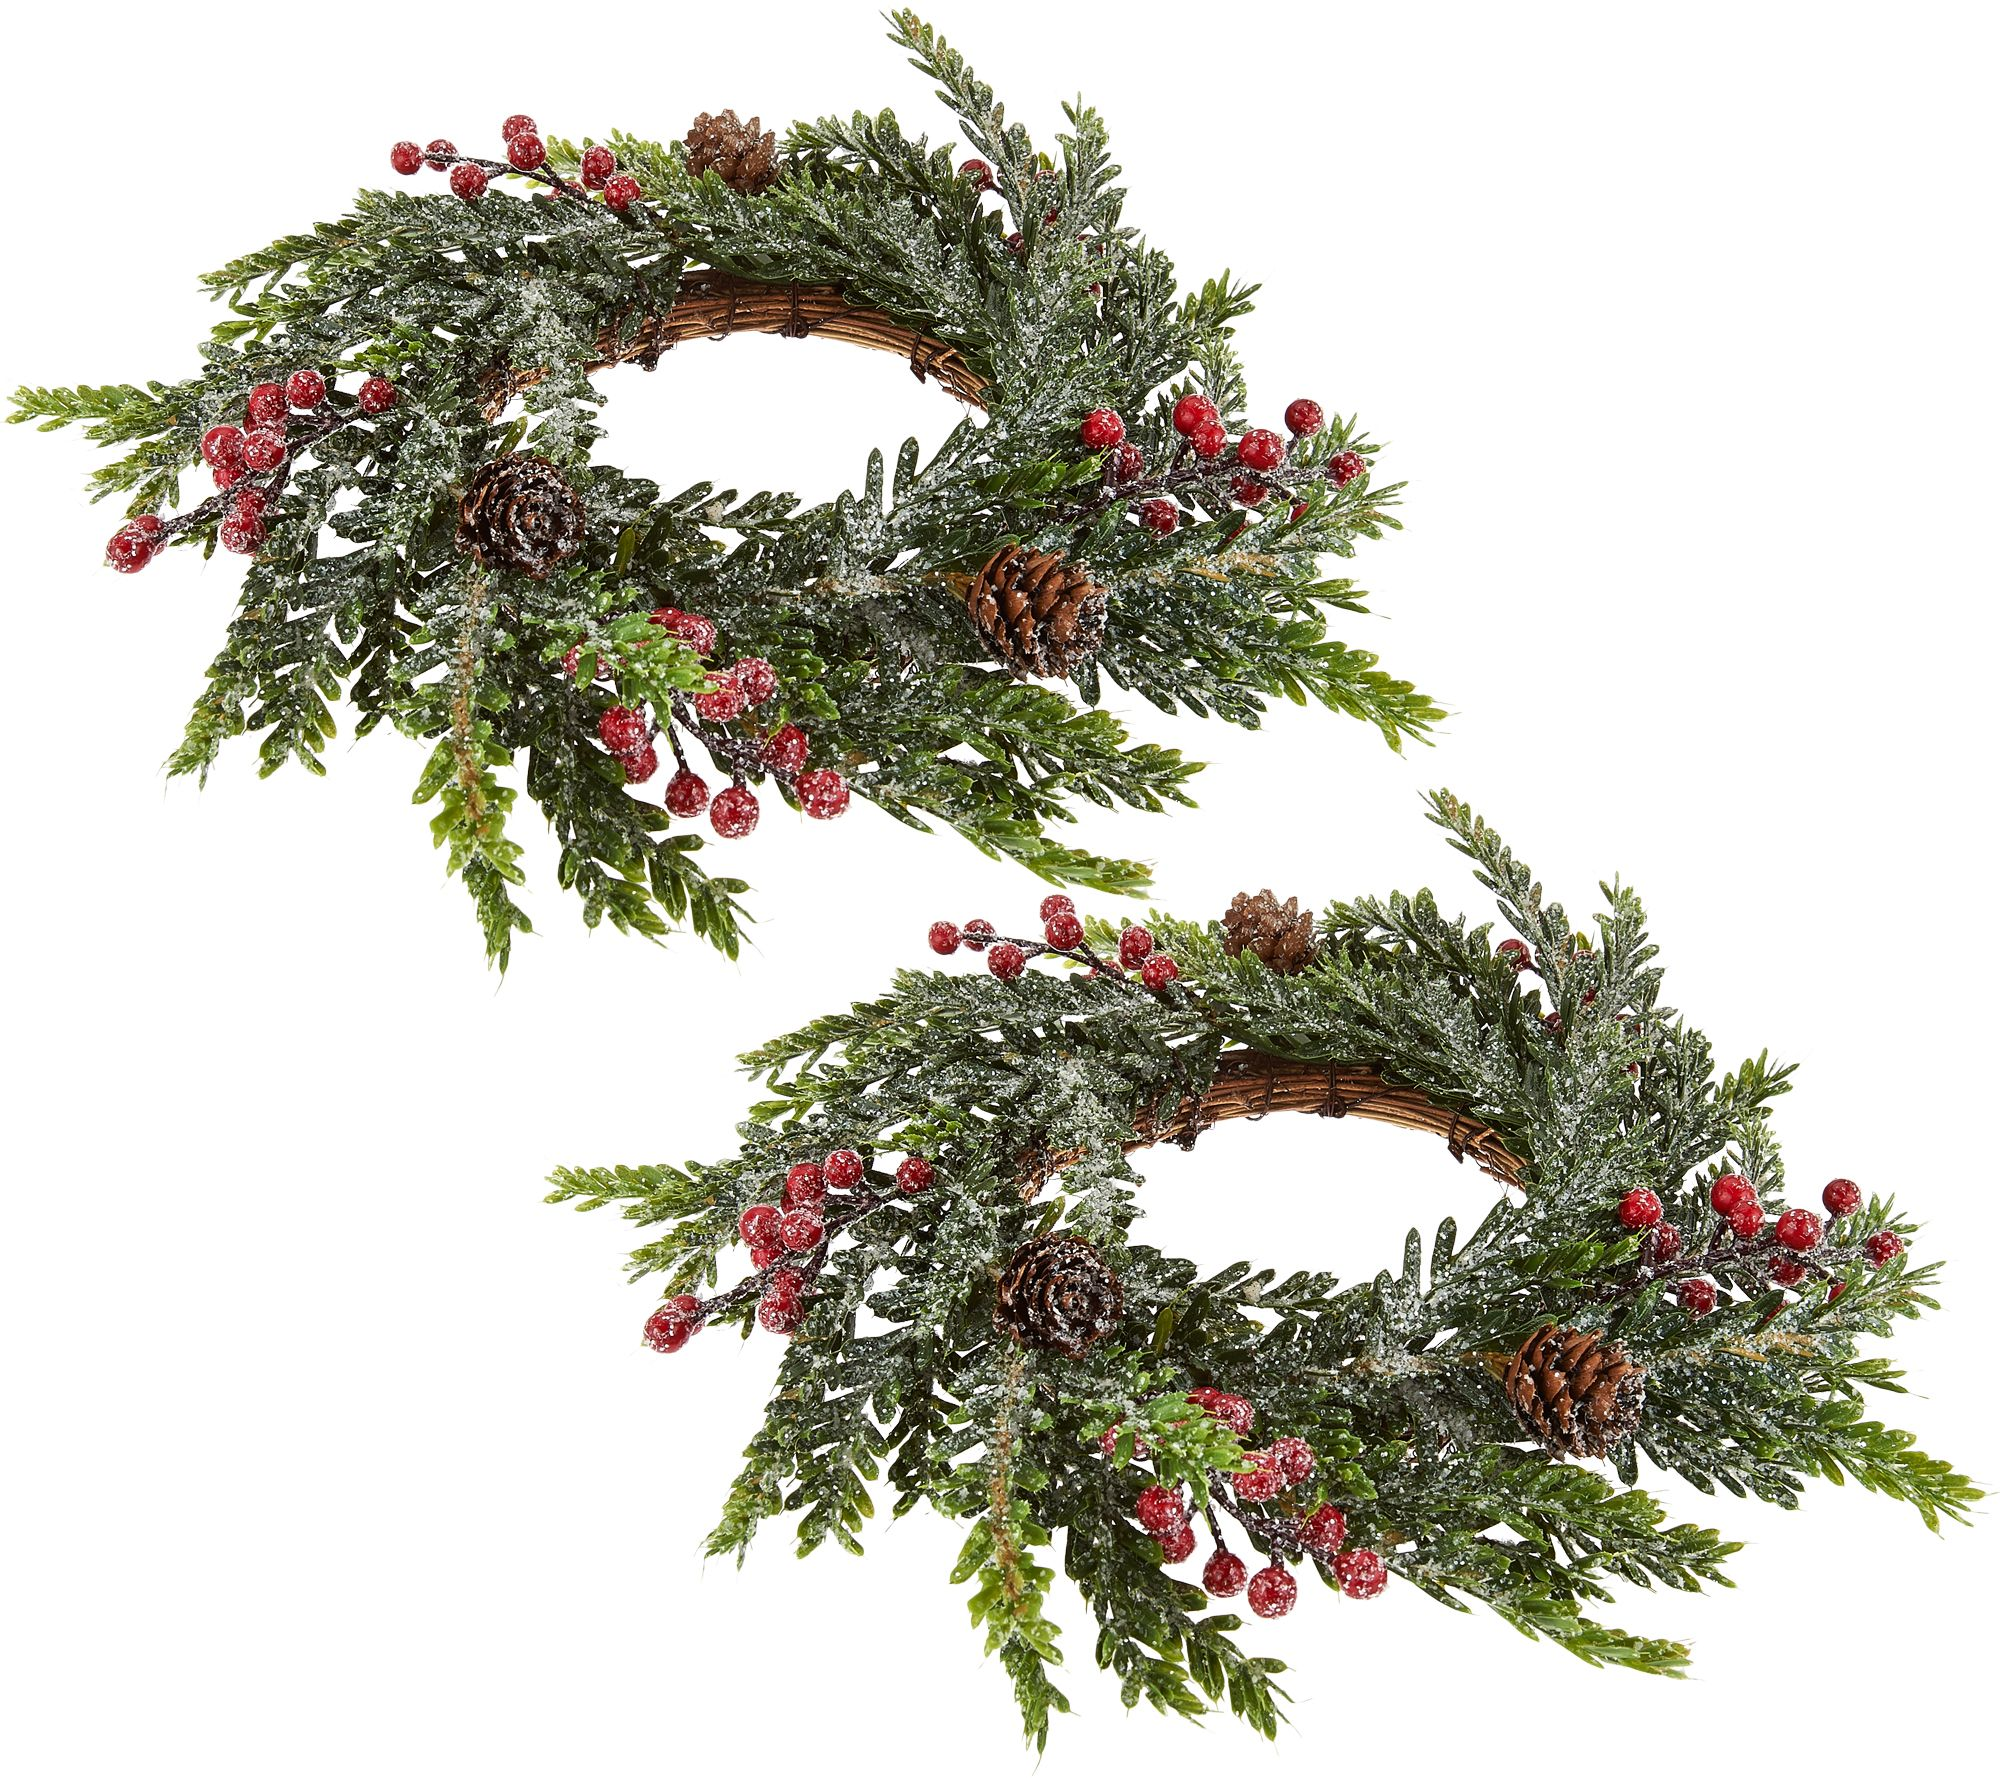 set of 2 iced hemlock candle rings with berries by valerie page 1 qvc com